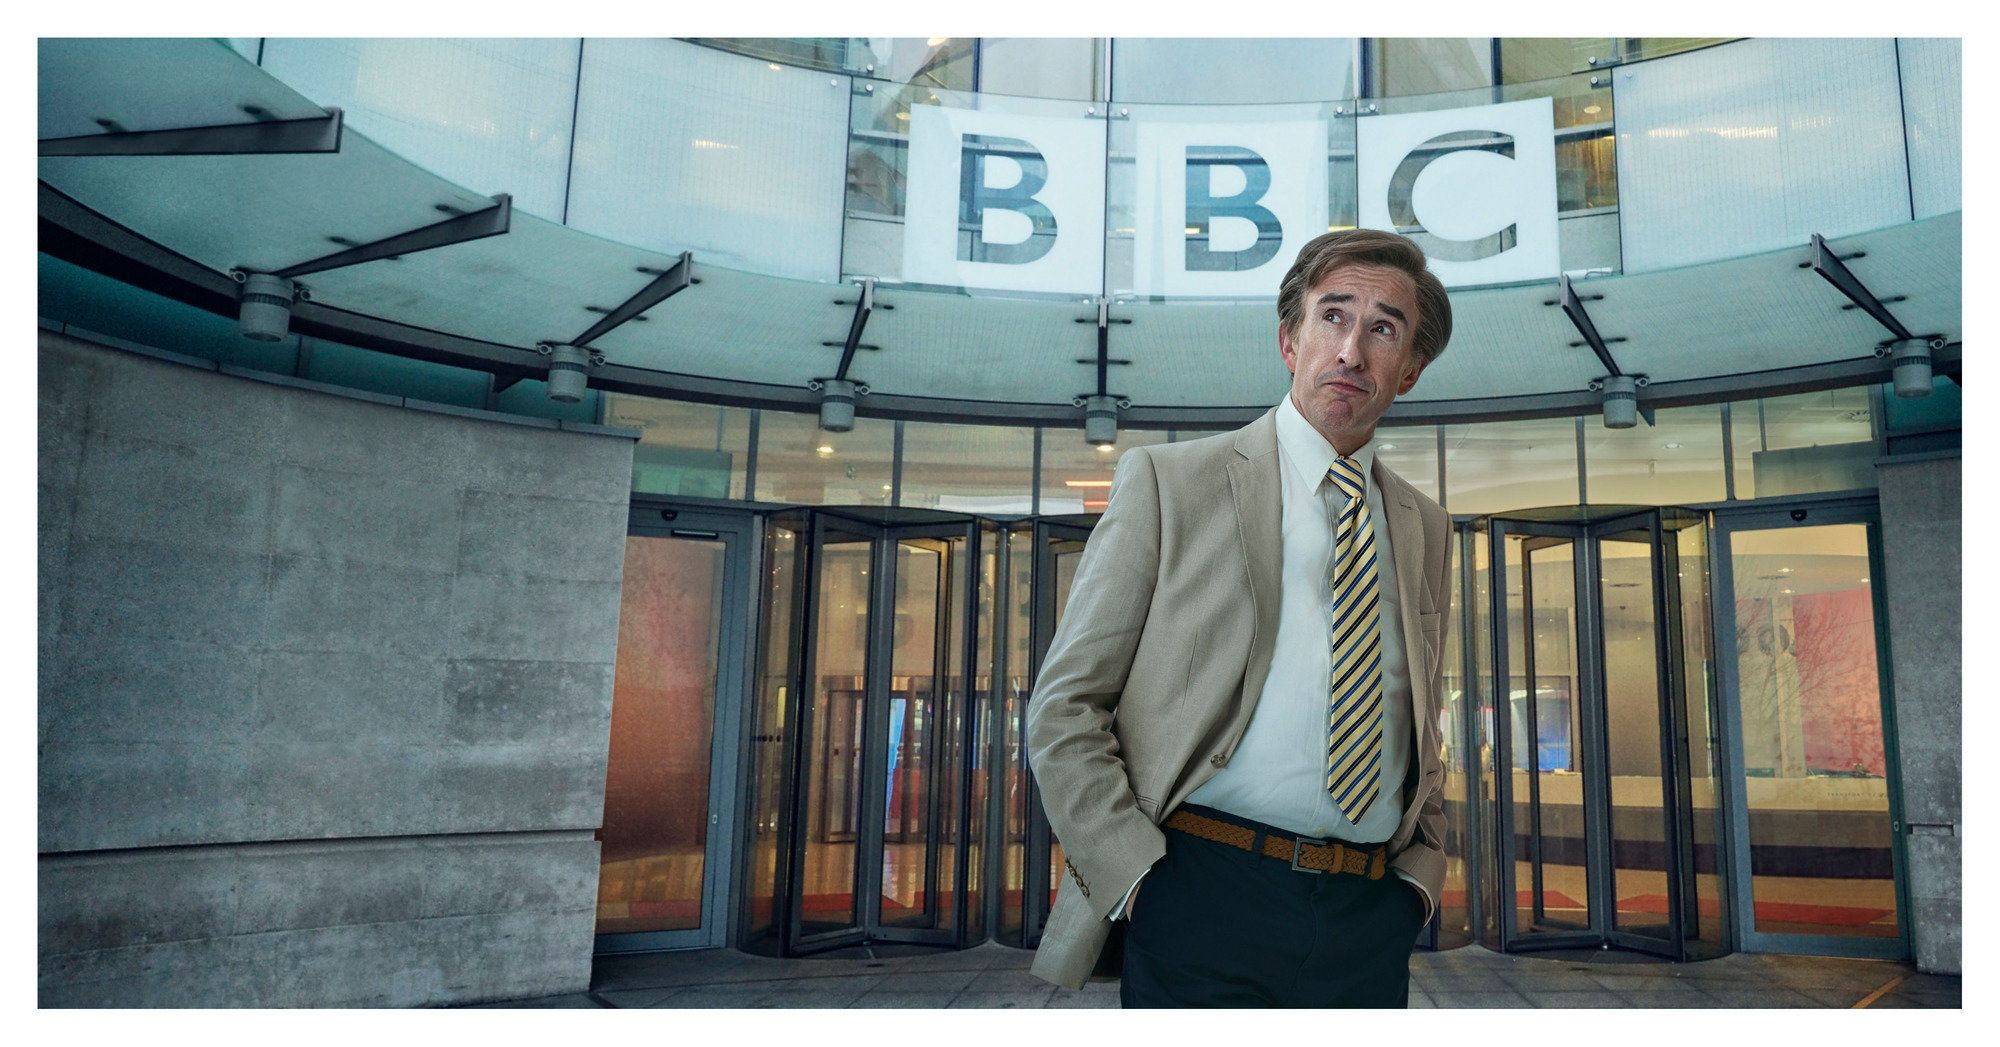 Alan Partridge Returns To The BBC For New